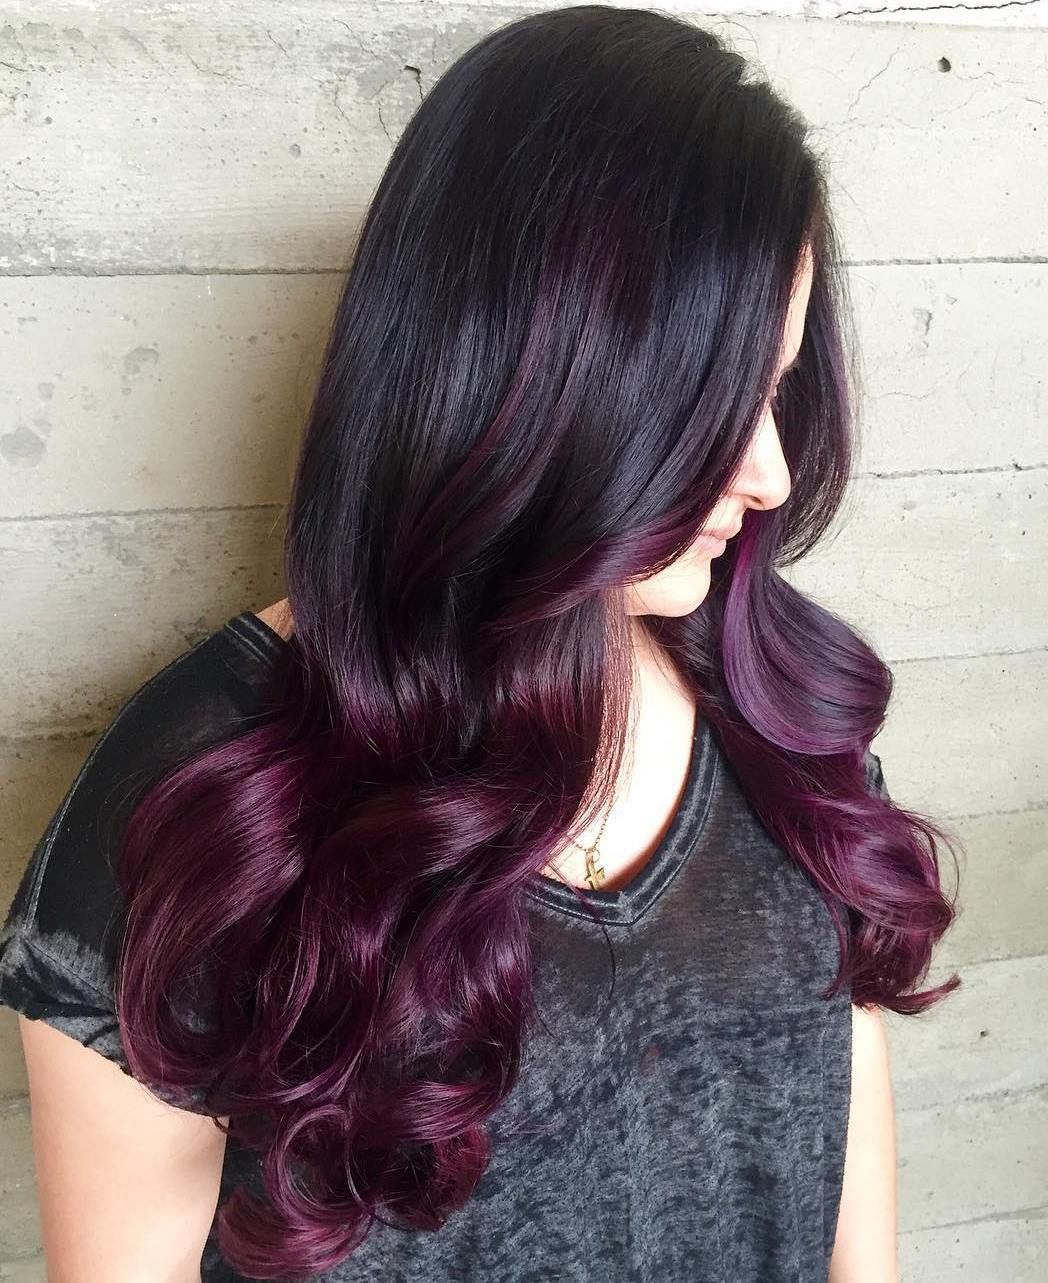 60 Best Ombre Hair Color Ideas For Blond Brown Red And Black Hair Ombre Hair Color Brown Ombre Hair Color Hair Color For Black Hair